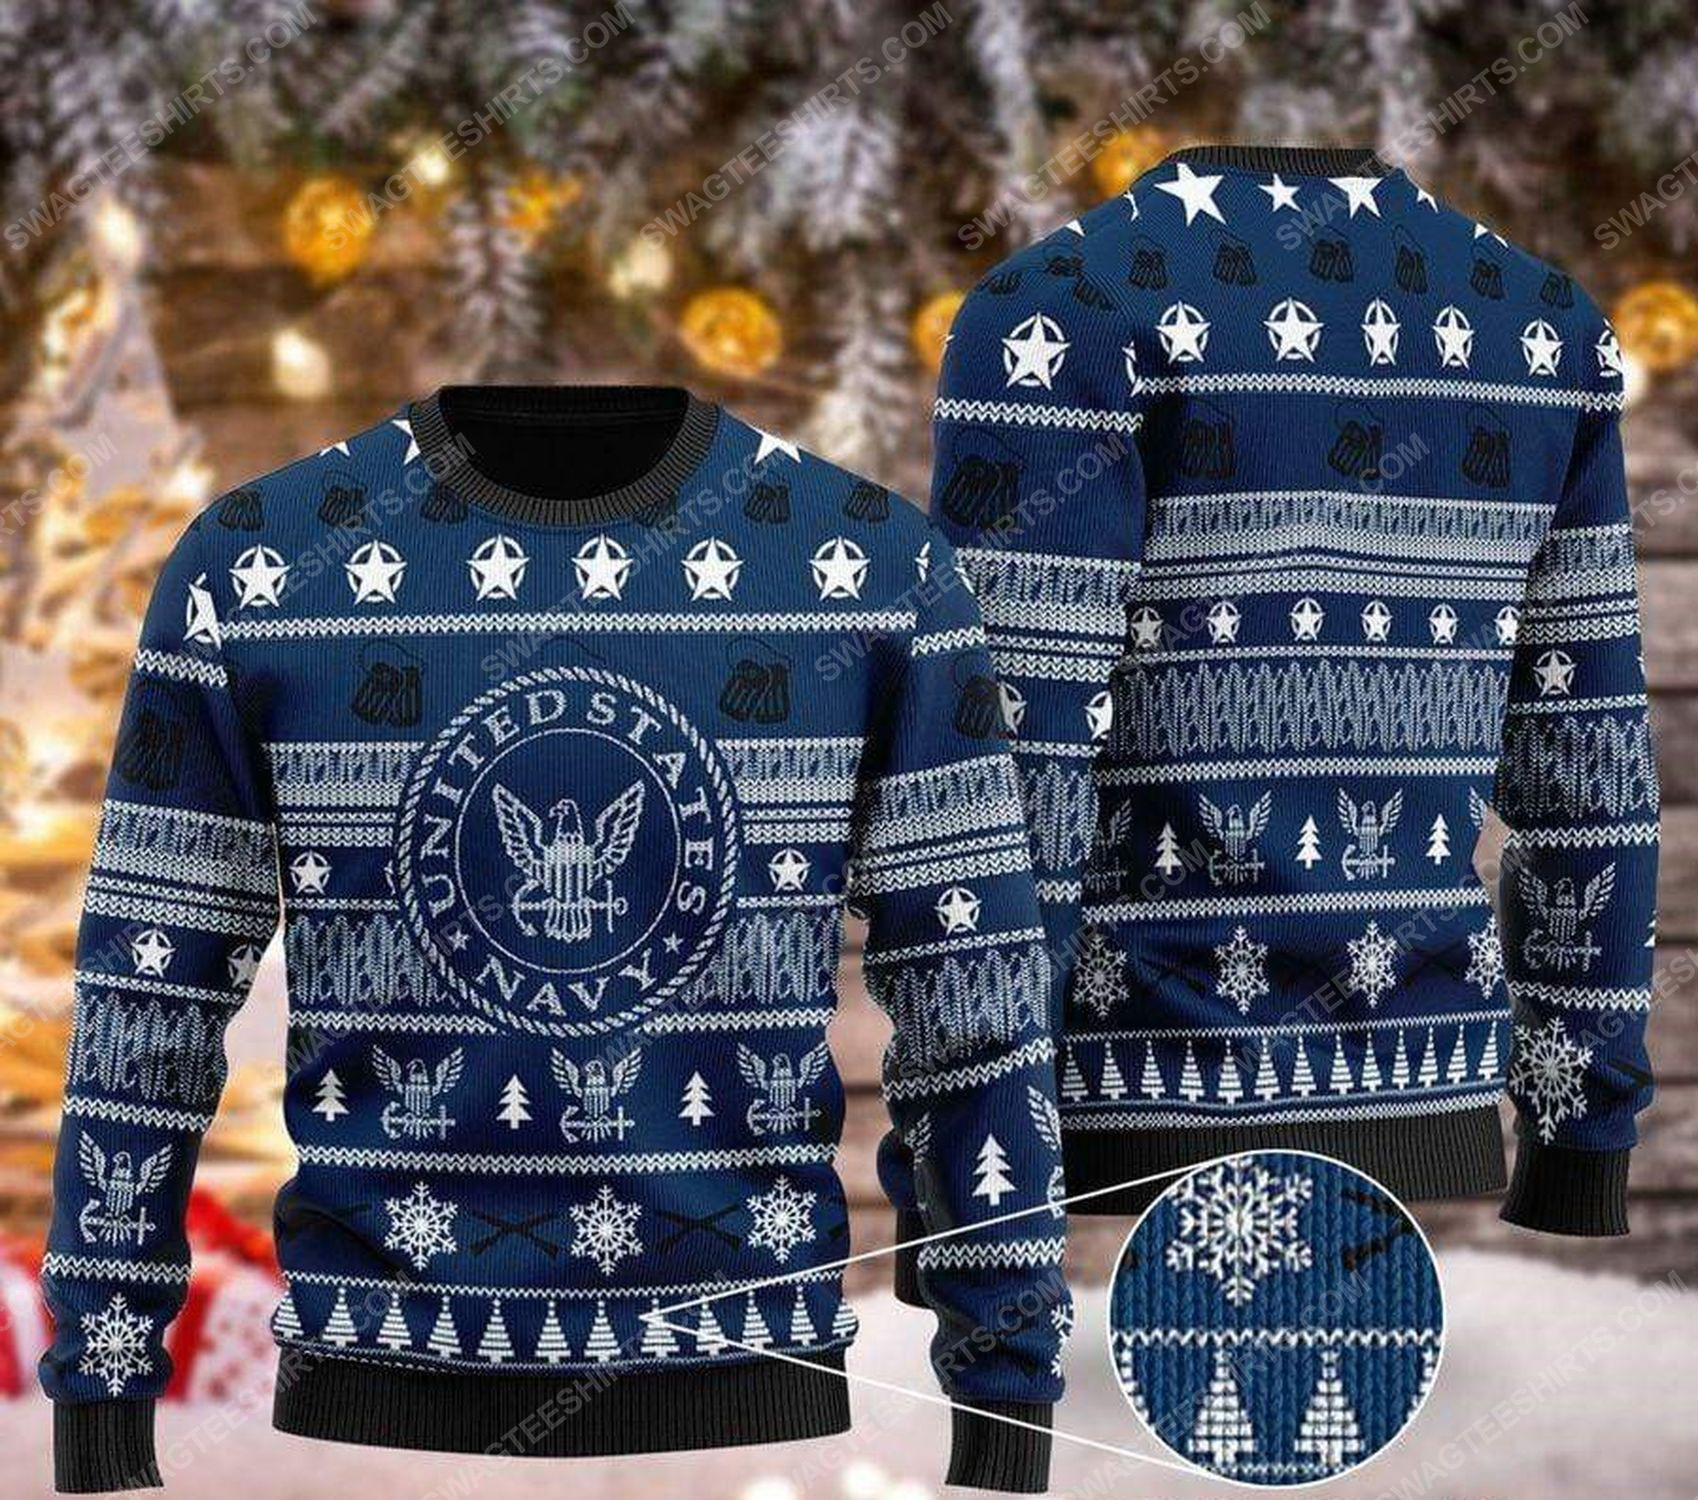 United states navy pattern ugly christmas sweater 1 - Copy (2)